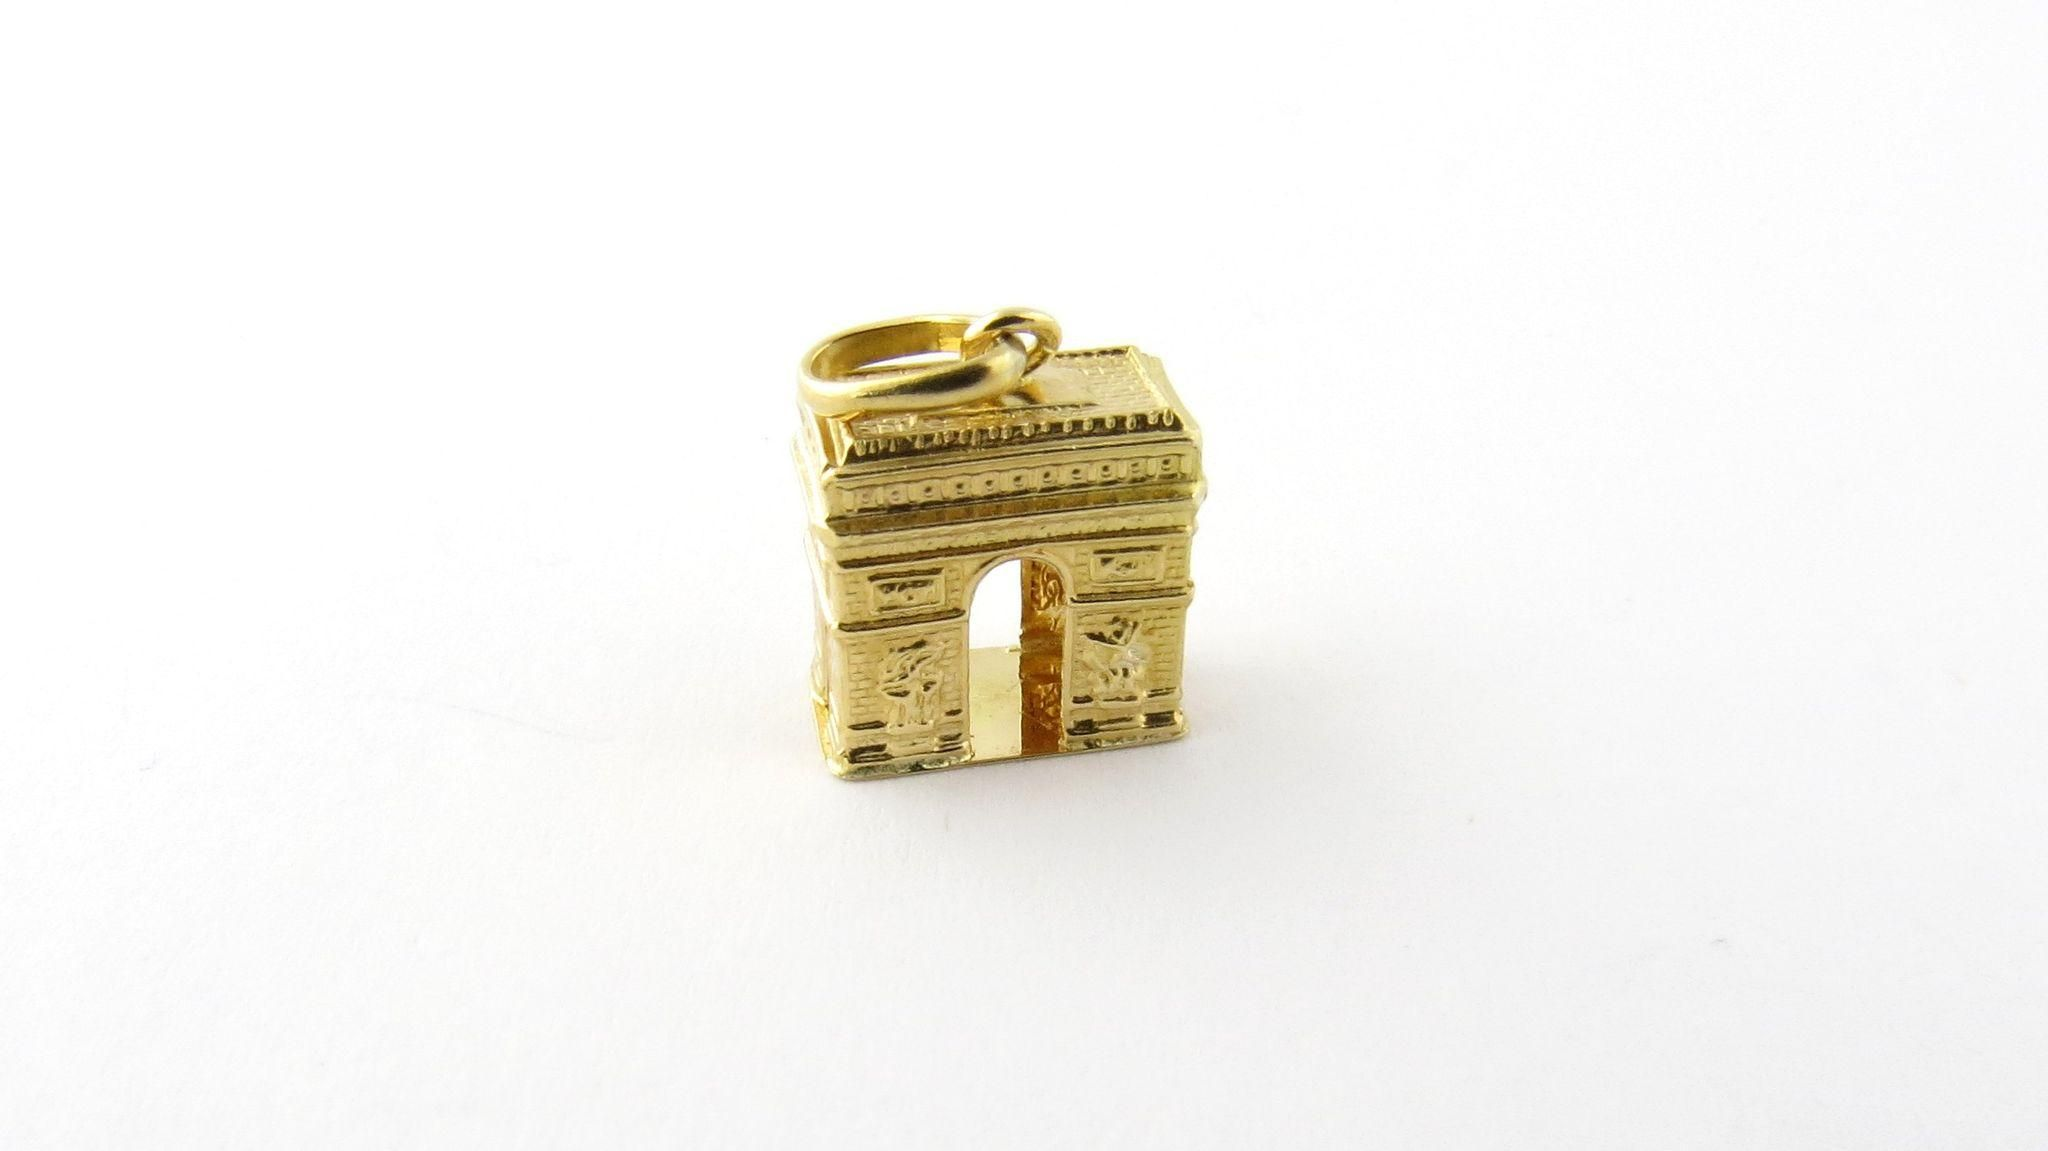 Vintage 14K Yellow Gold Arc De Triomphe Charm Memories of Paris and all its beauty contained in this charm. Intricately detailed throughout the 3D